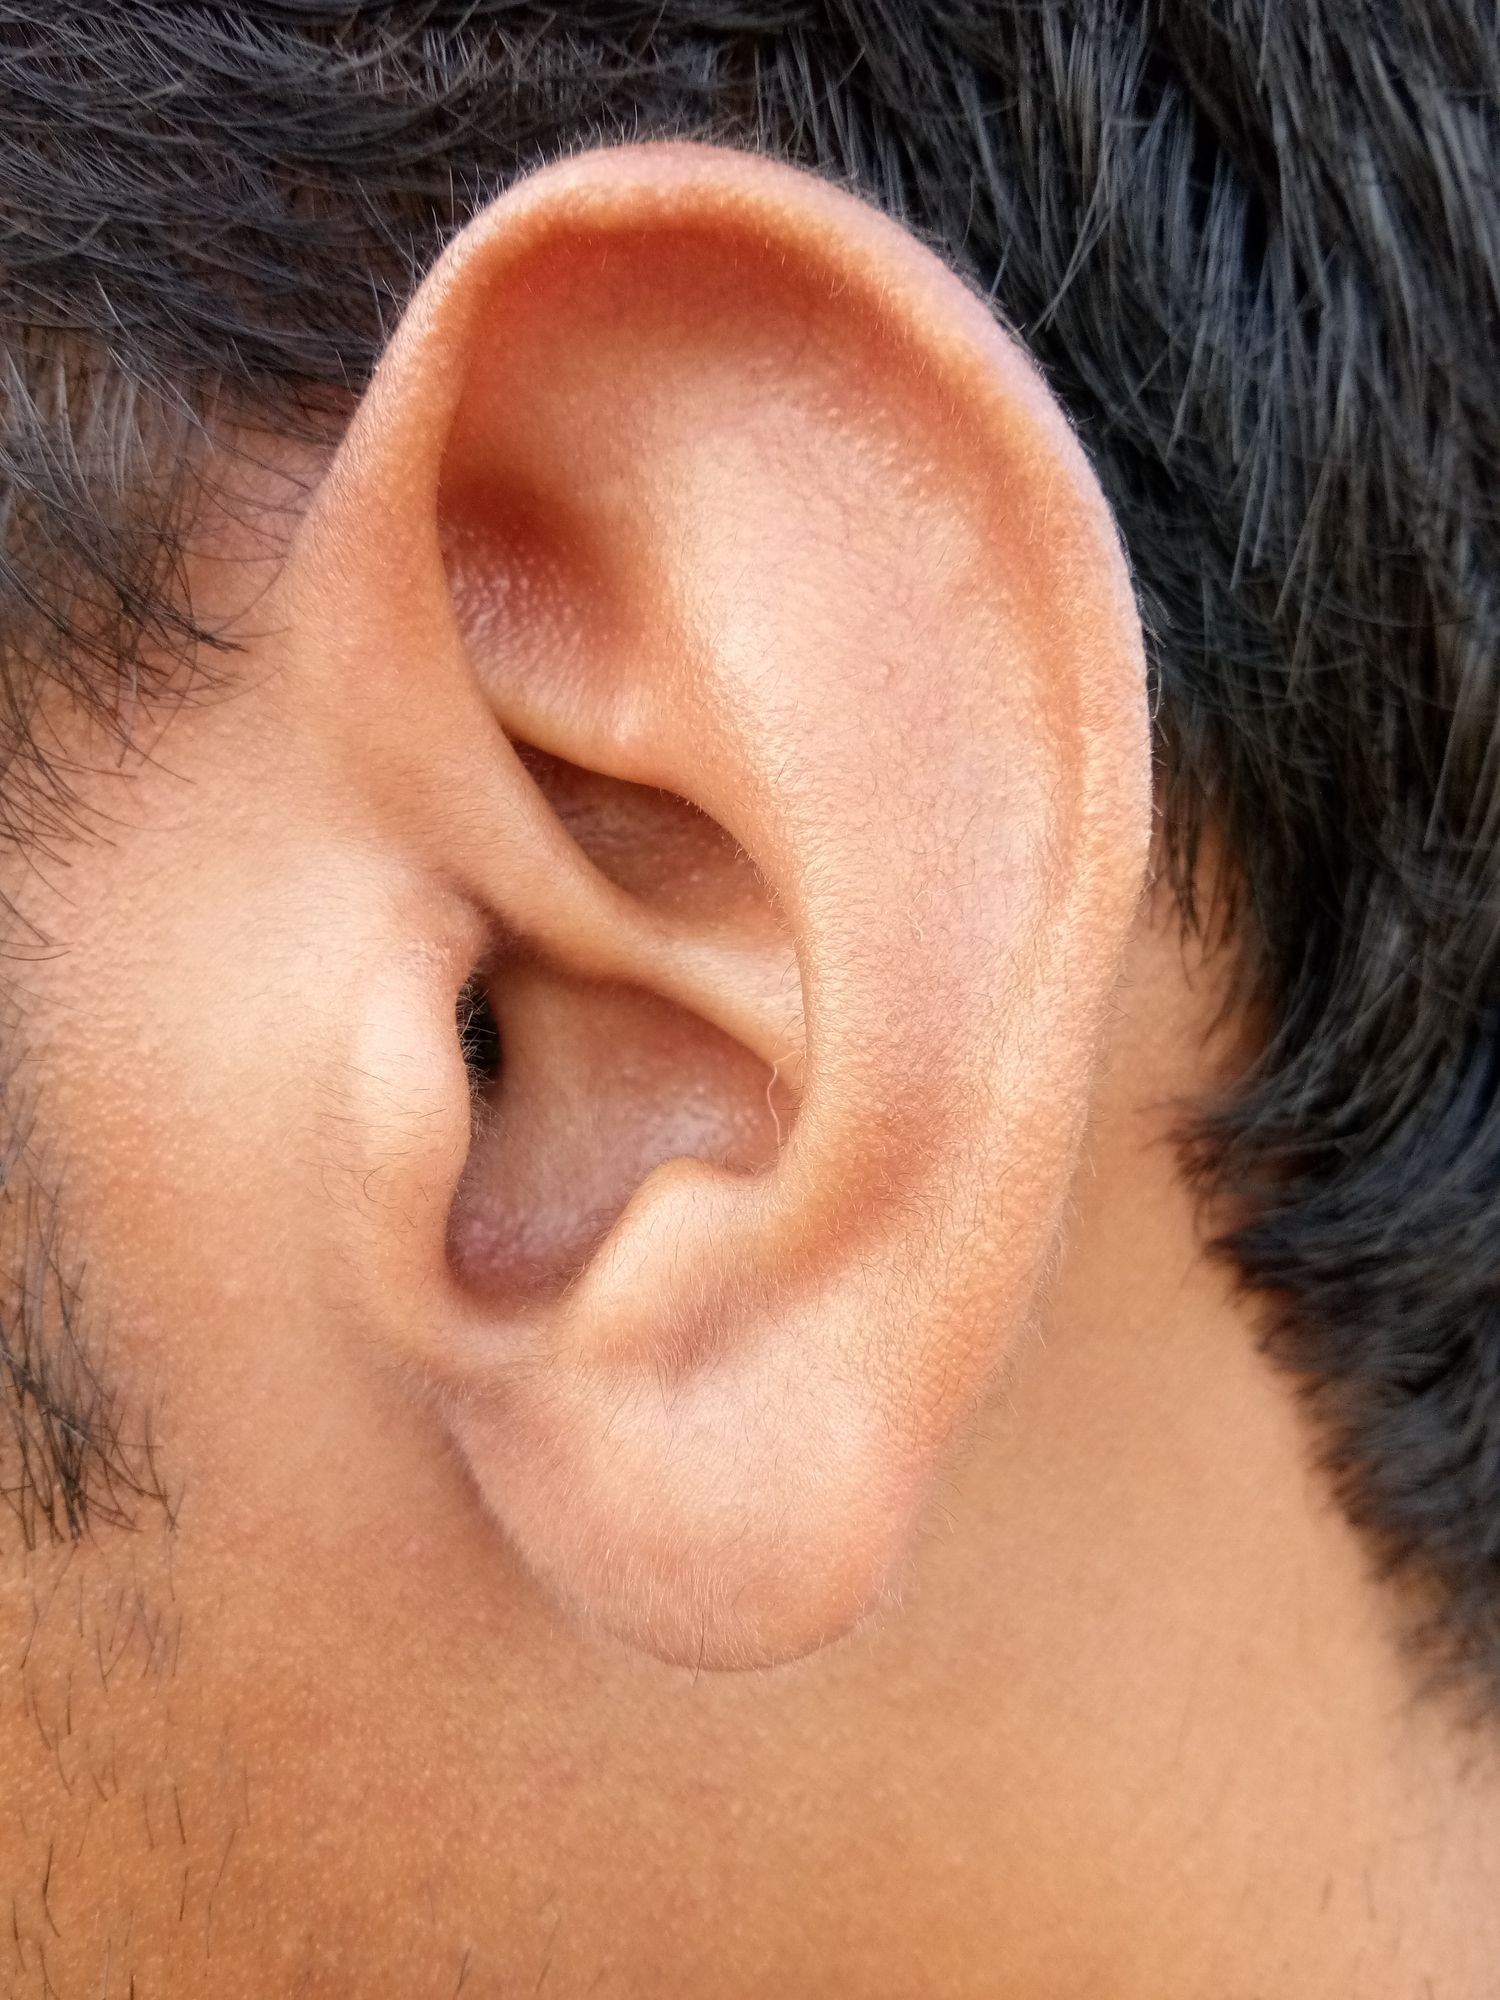 Itchy inner ears? Sounds like you might have eczema